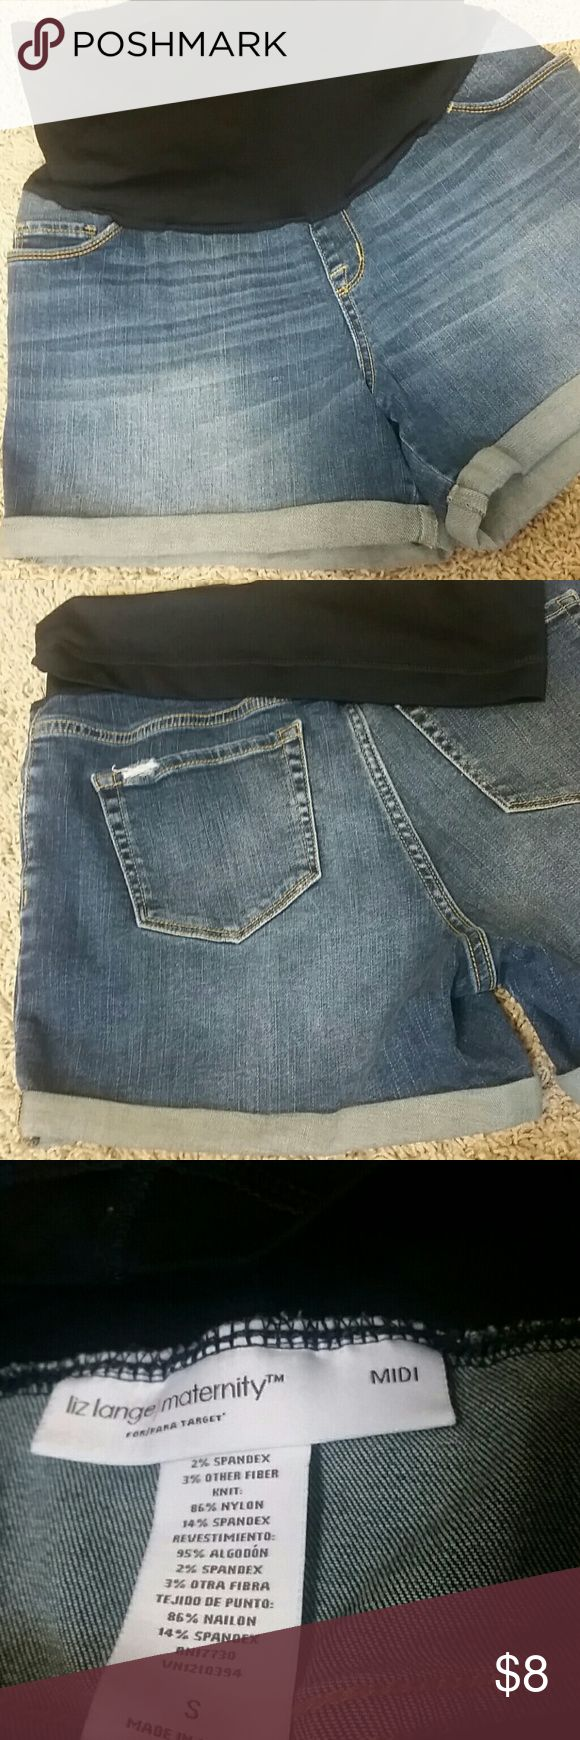 Liz Lange Maternity MIDI Jeans Shorts Sz S Womens Liz Lange Maternity MIDI Jeans Shorts. Sz Small  Cuffed, medium wash shorts with belly fabric. Distressed in good condition. Liz Lange Shorts Jean Shorts